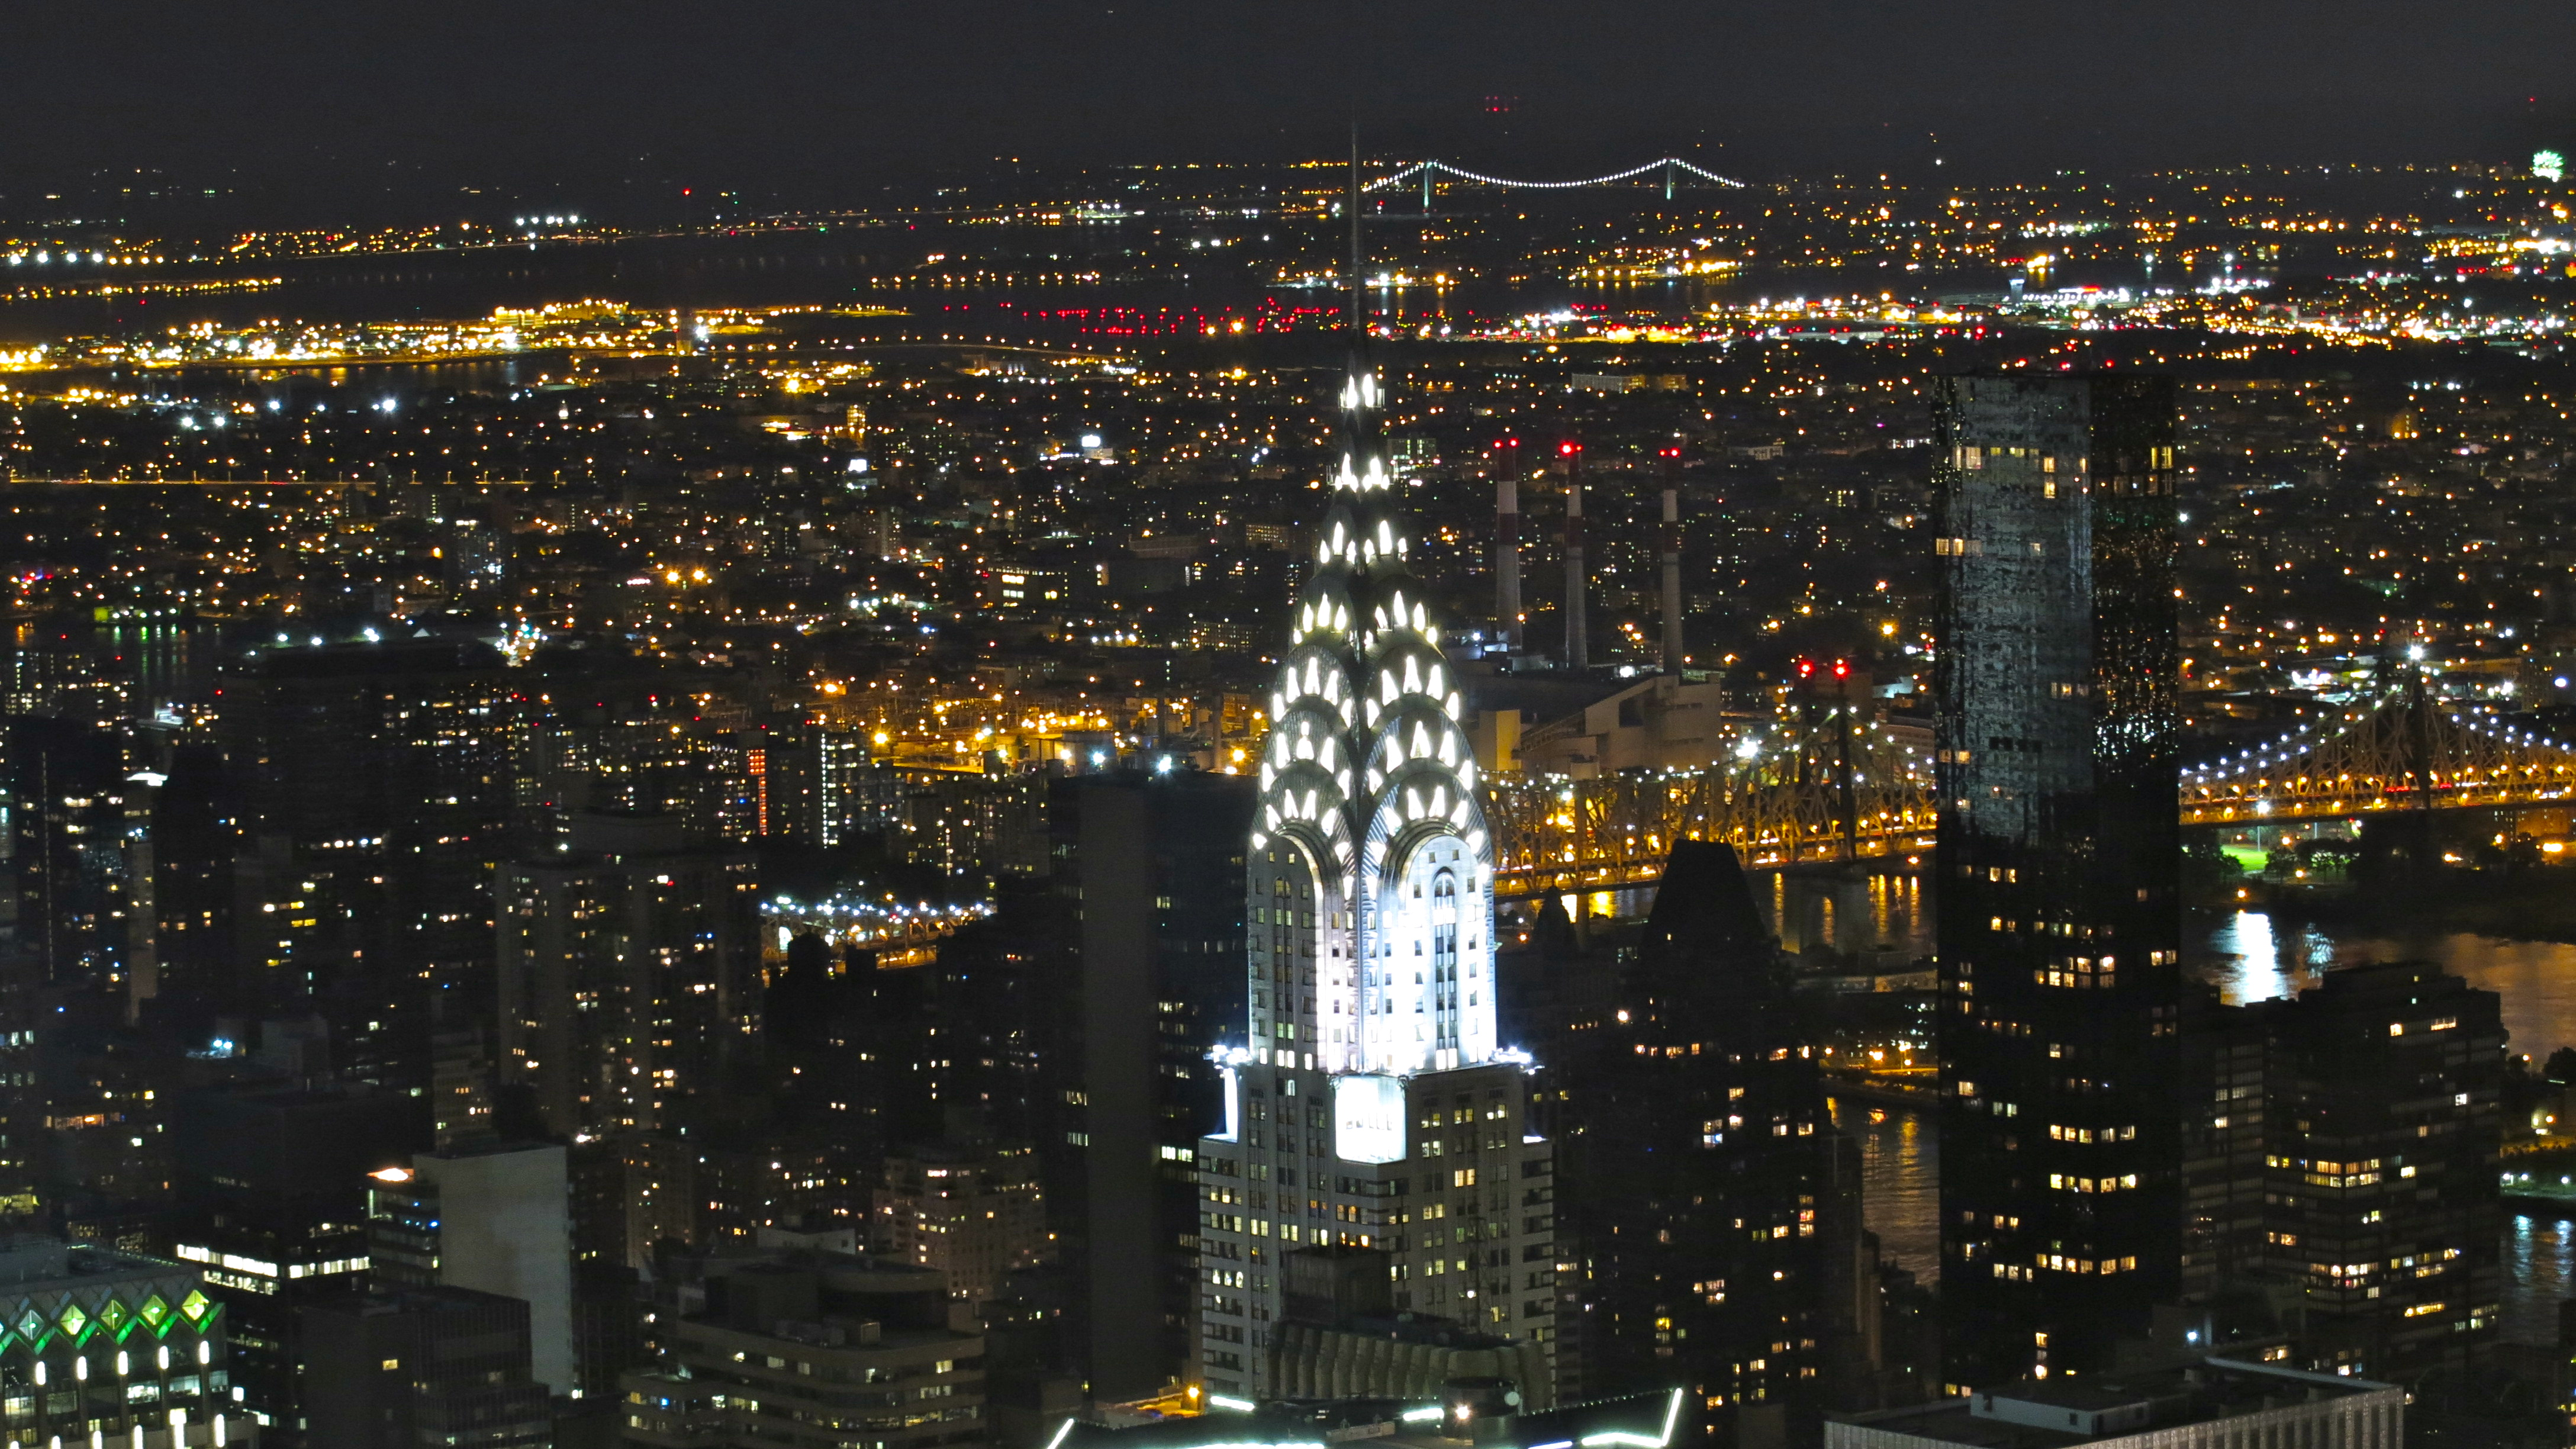 File:Chrysler building by night.JPG - Wikimedia Commons